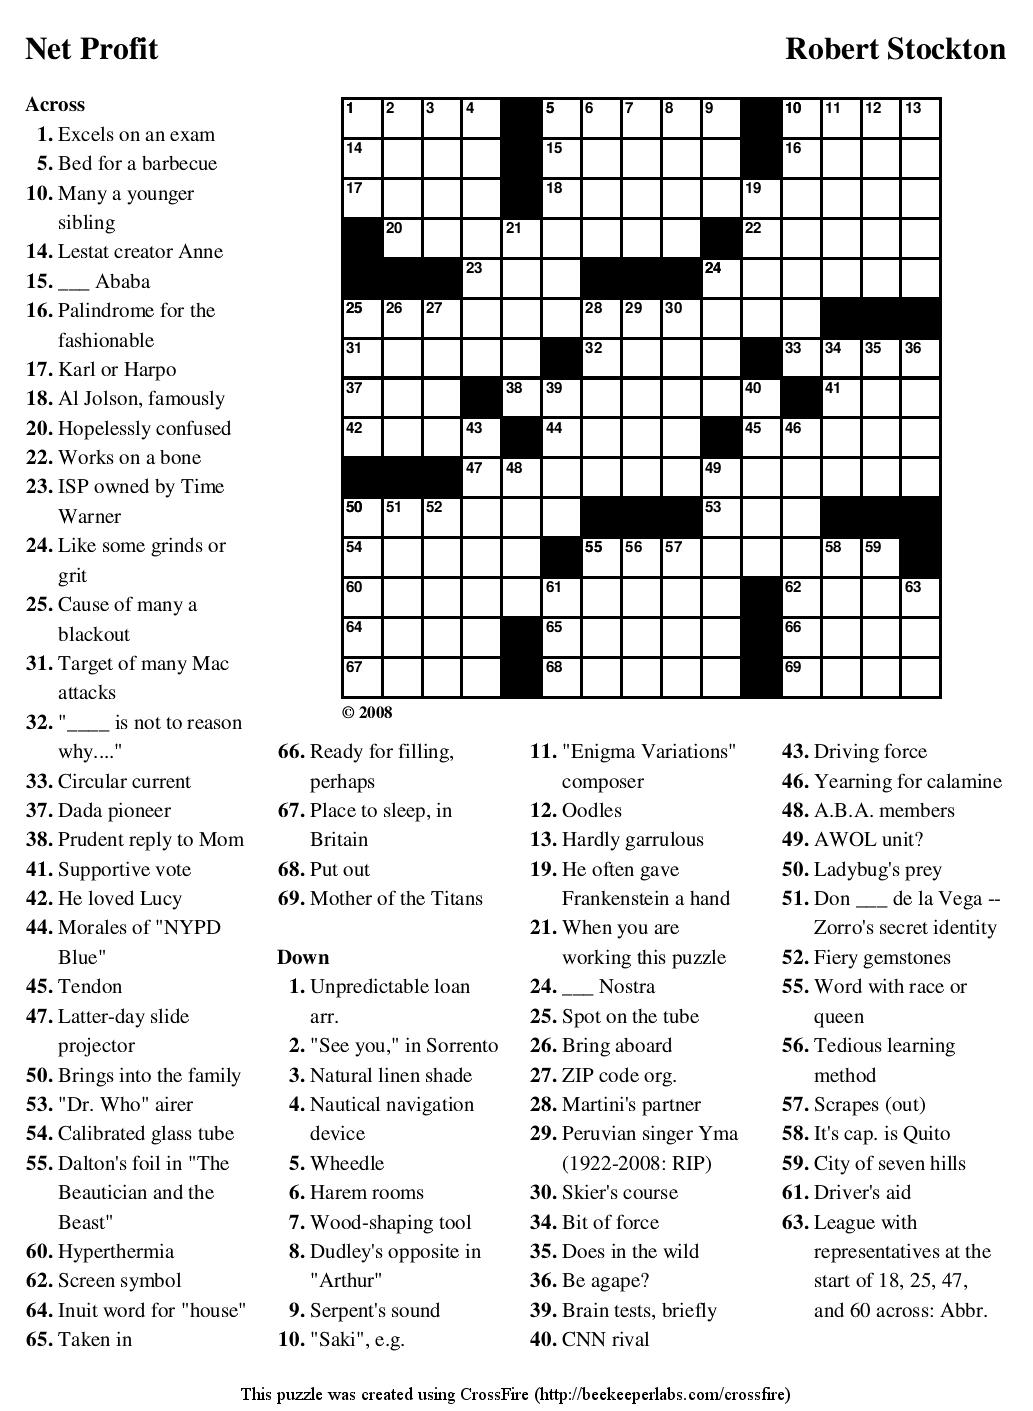 Crosswords Crossword Maker Puzzle Free Netprofit ~ Themarketonholly - Crossword Puzzle Maker Free Printable No Download